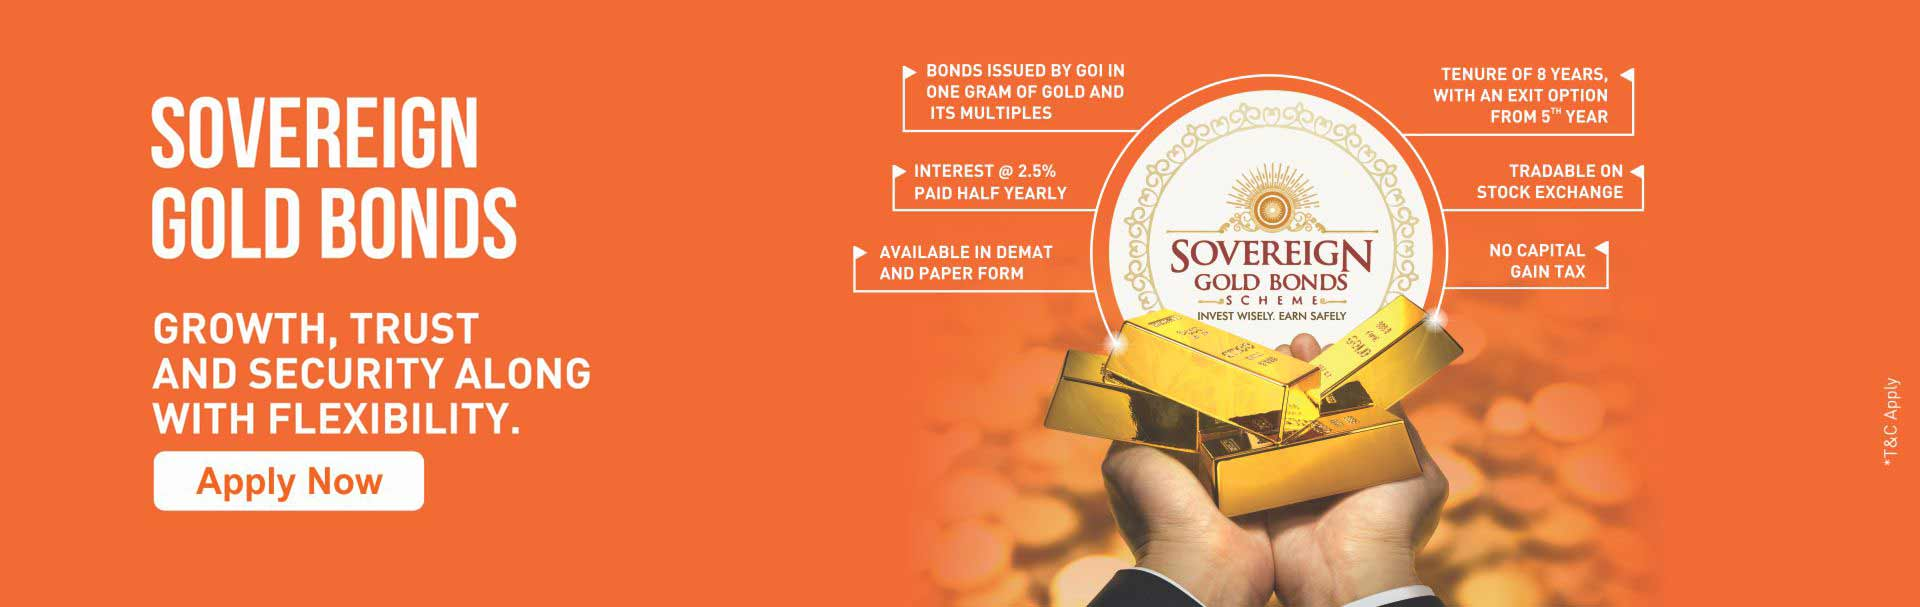 Sovereign Gold Bonds